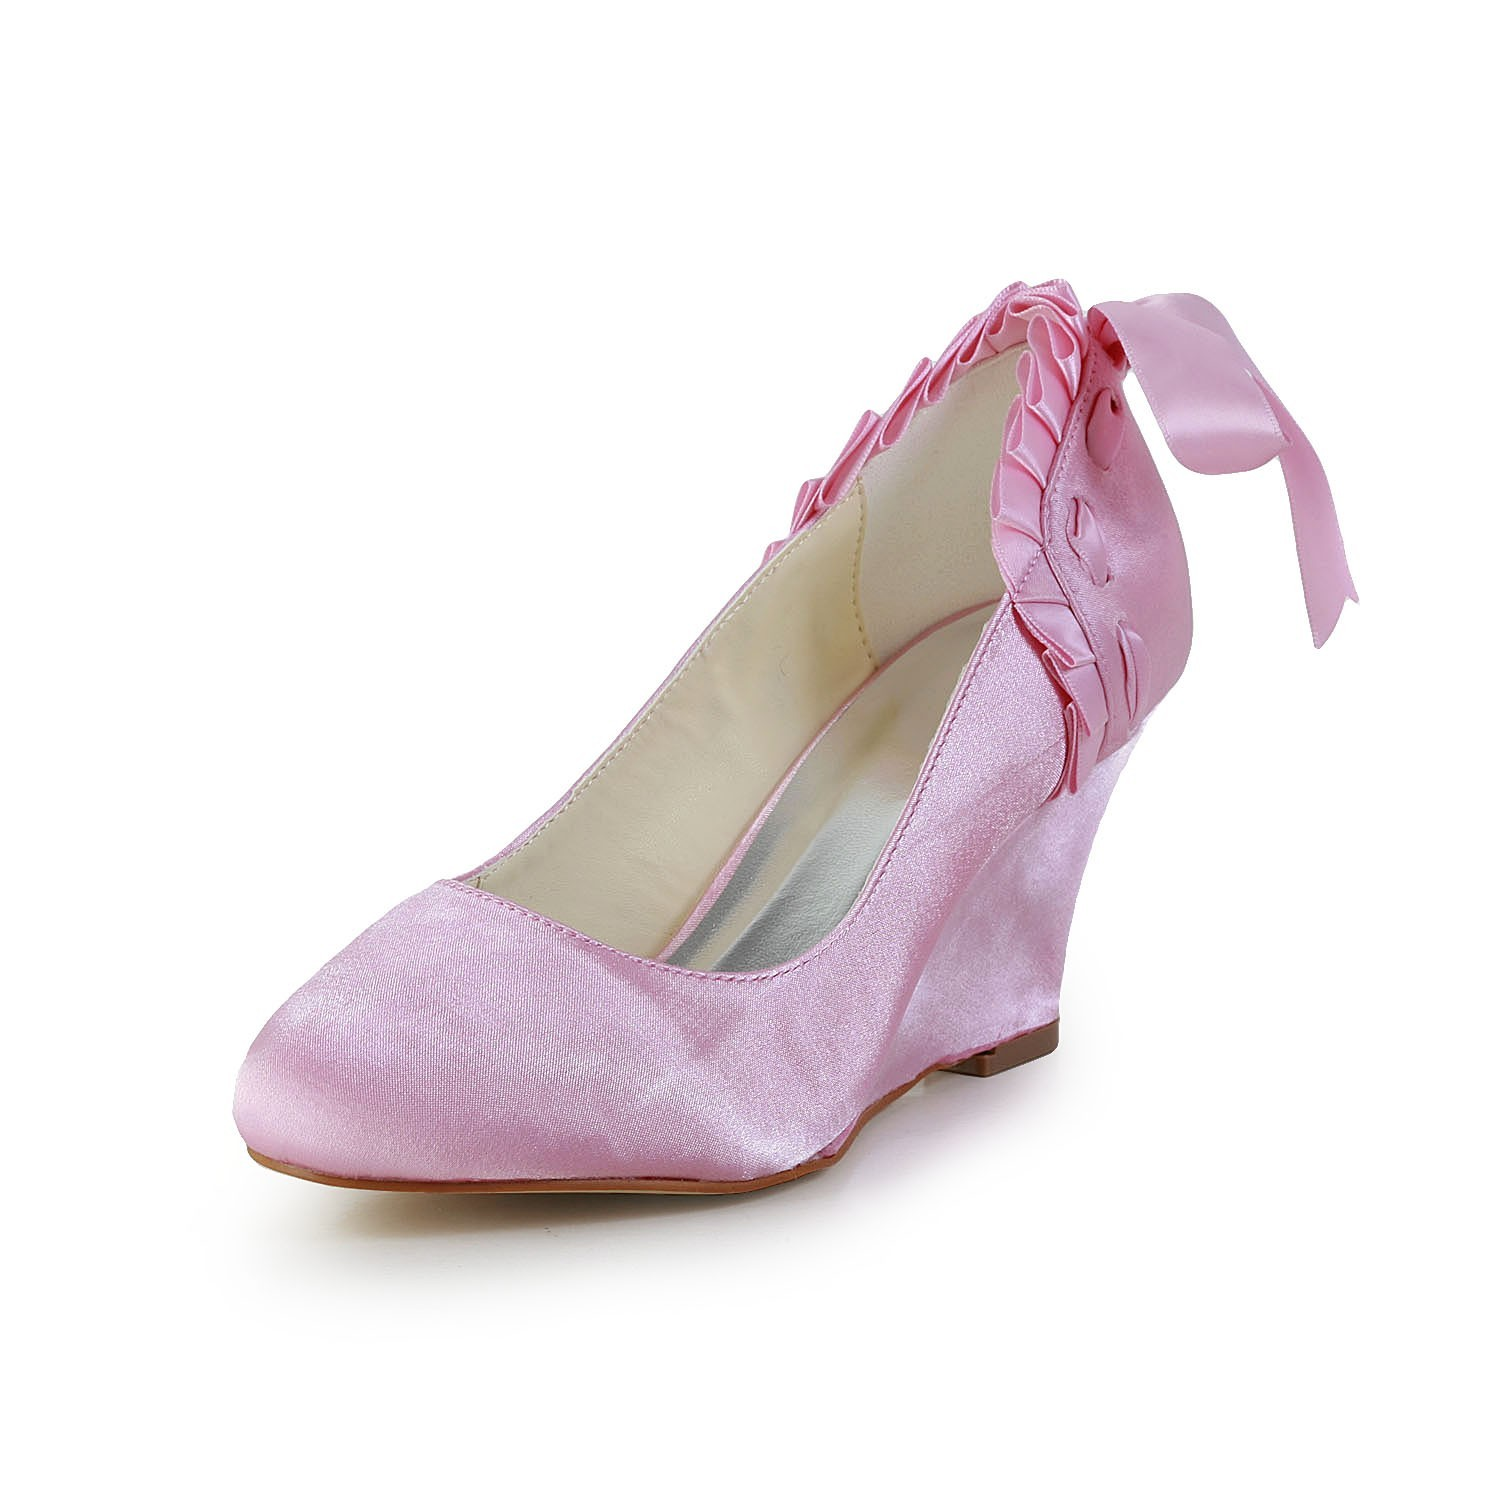 comprare outlet ben noto Women's Unique Satin Wedge Heel Closed Toe Pink Wedding Shoes